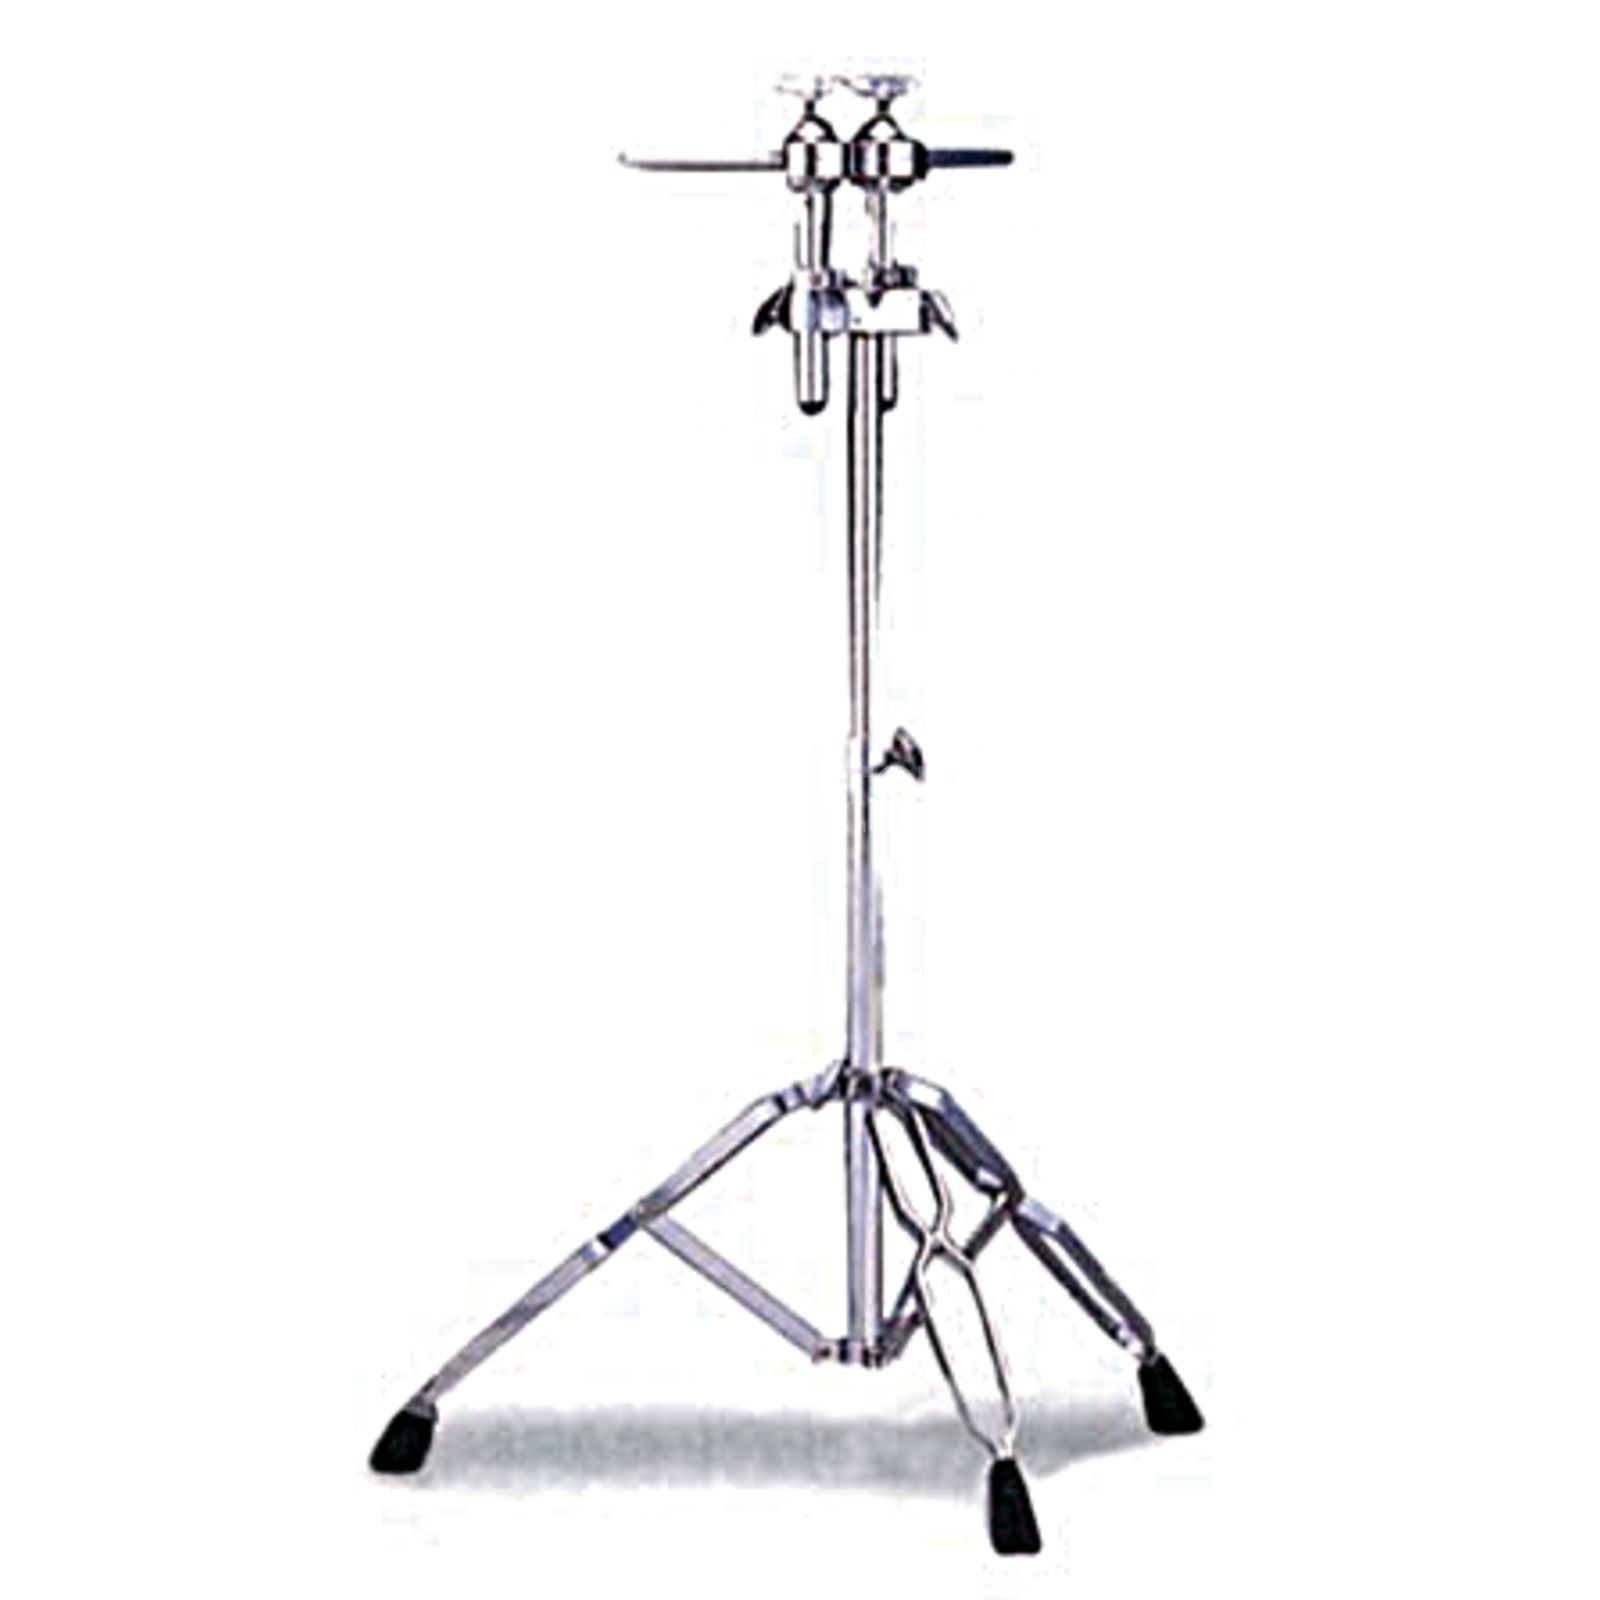 Yamaha Double Tom Stand WS865A, f. YESS, B-Stock Product Image